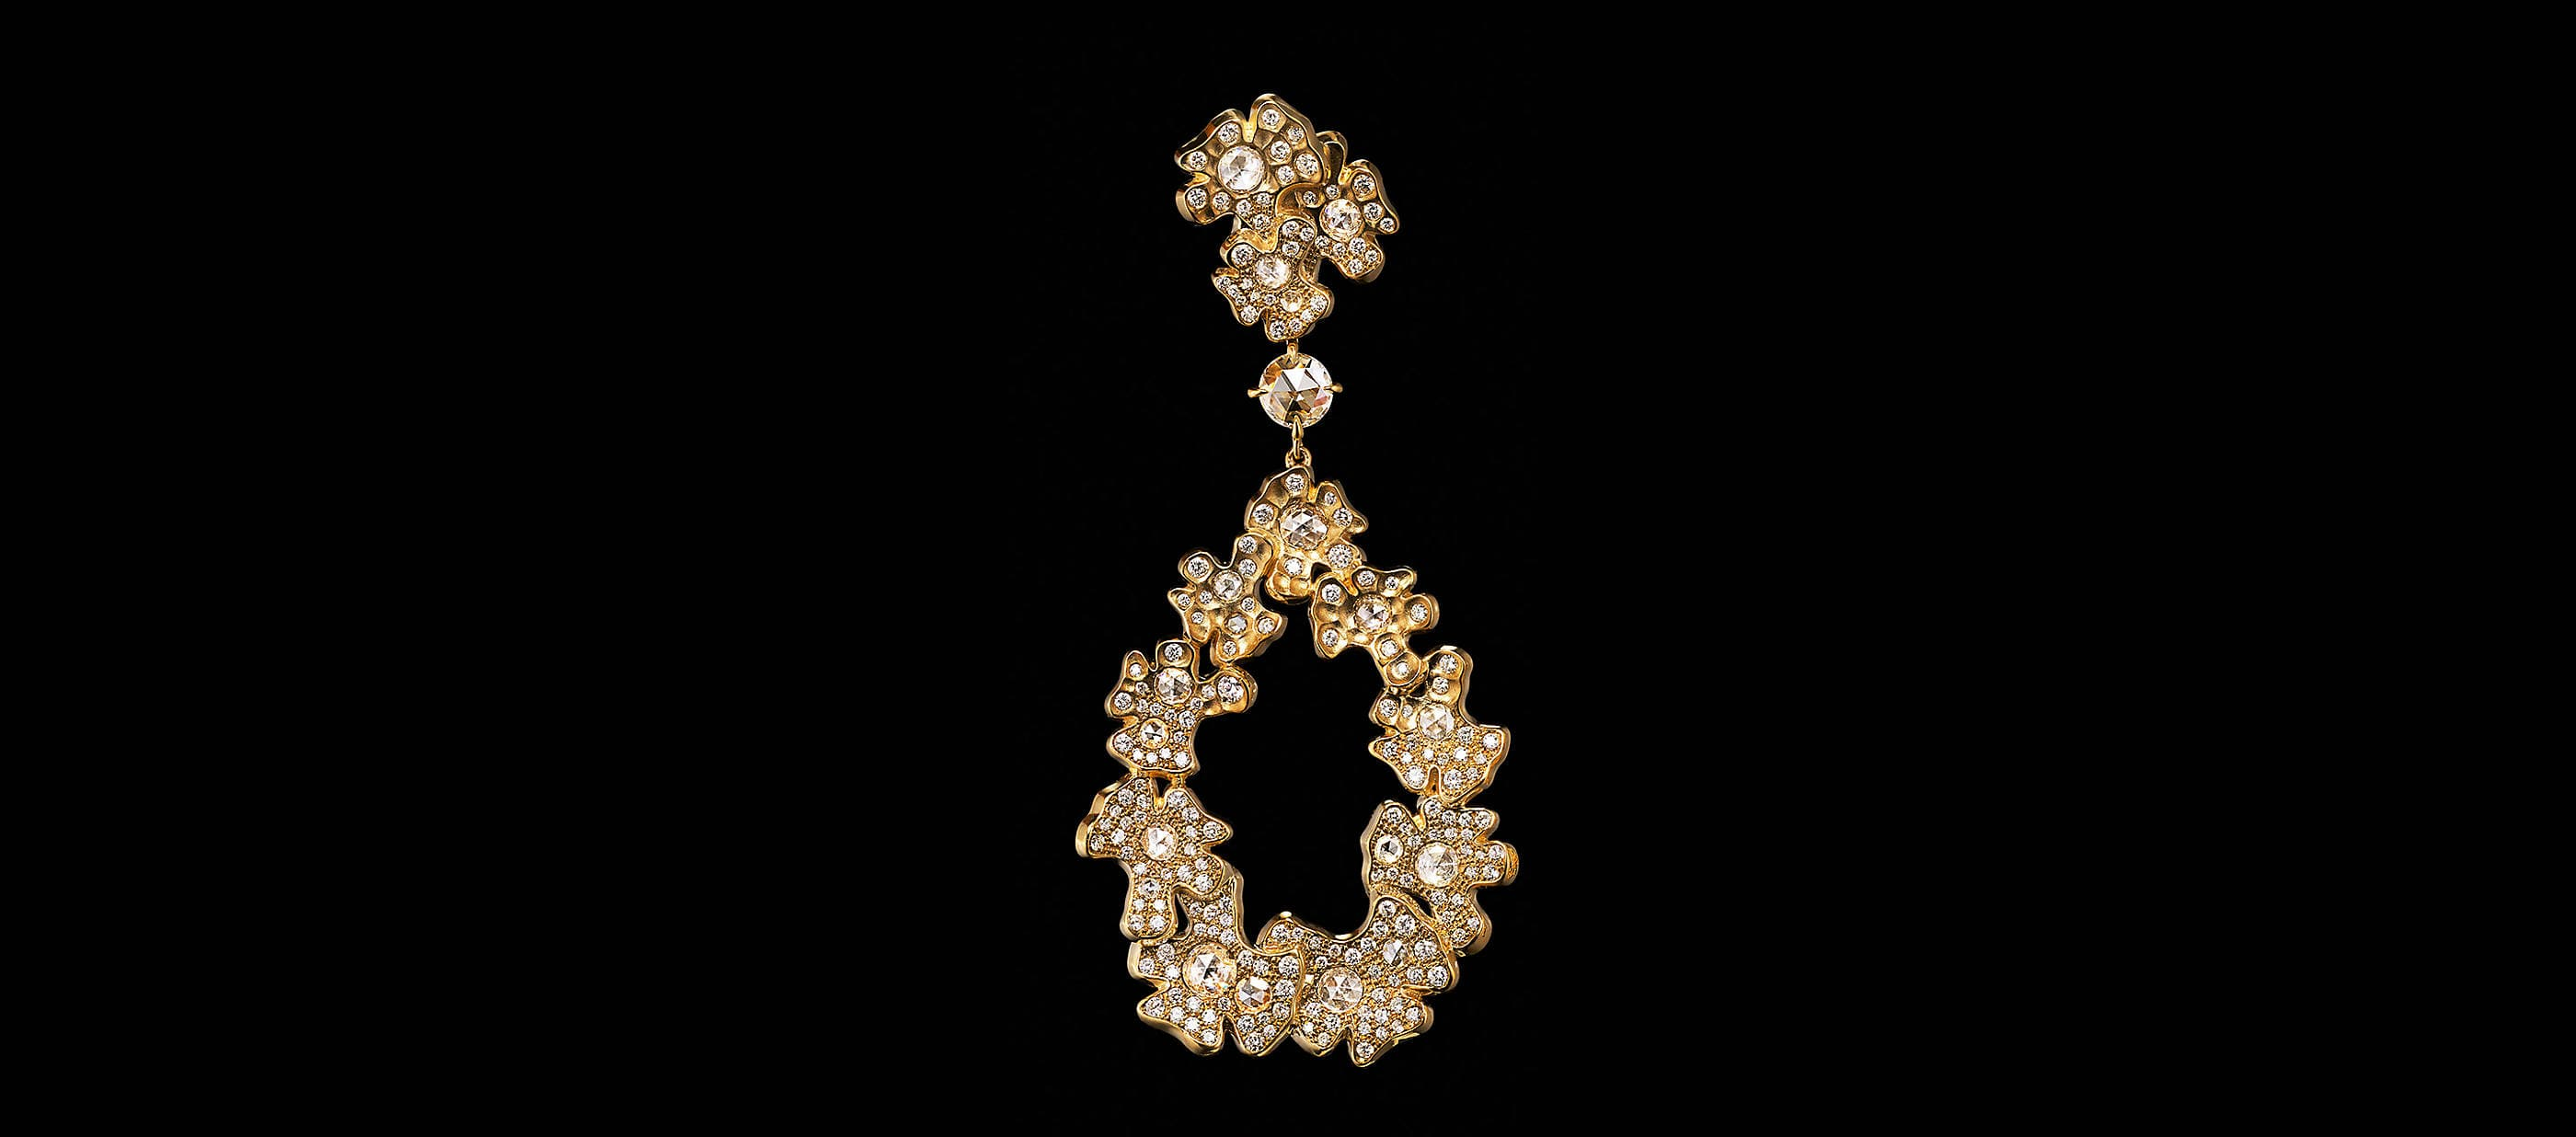 An image of a Yellow Gold HJ petals drop Earring